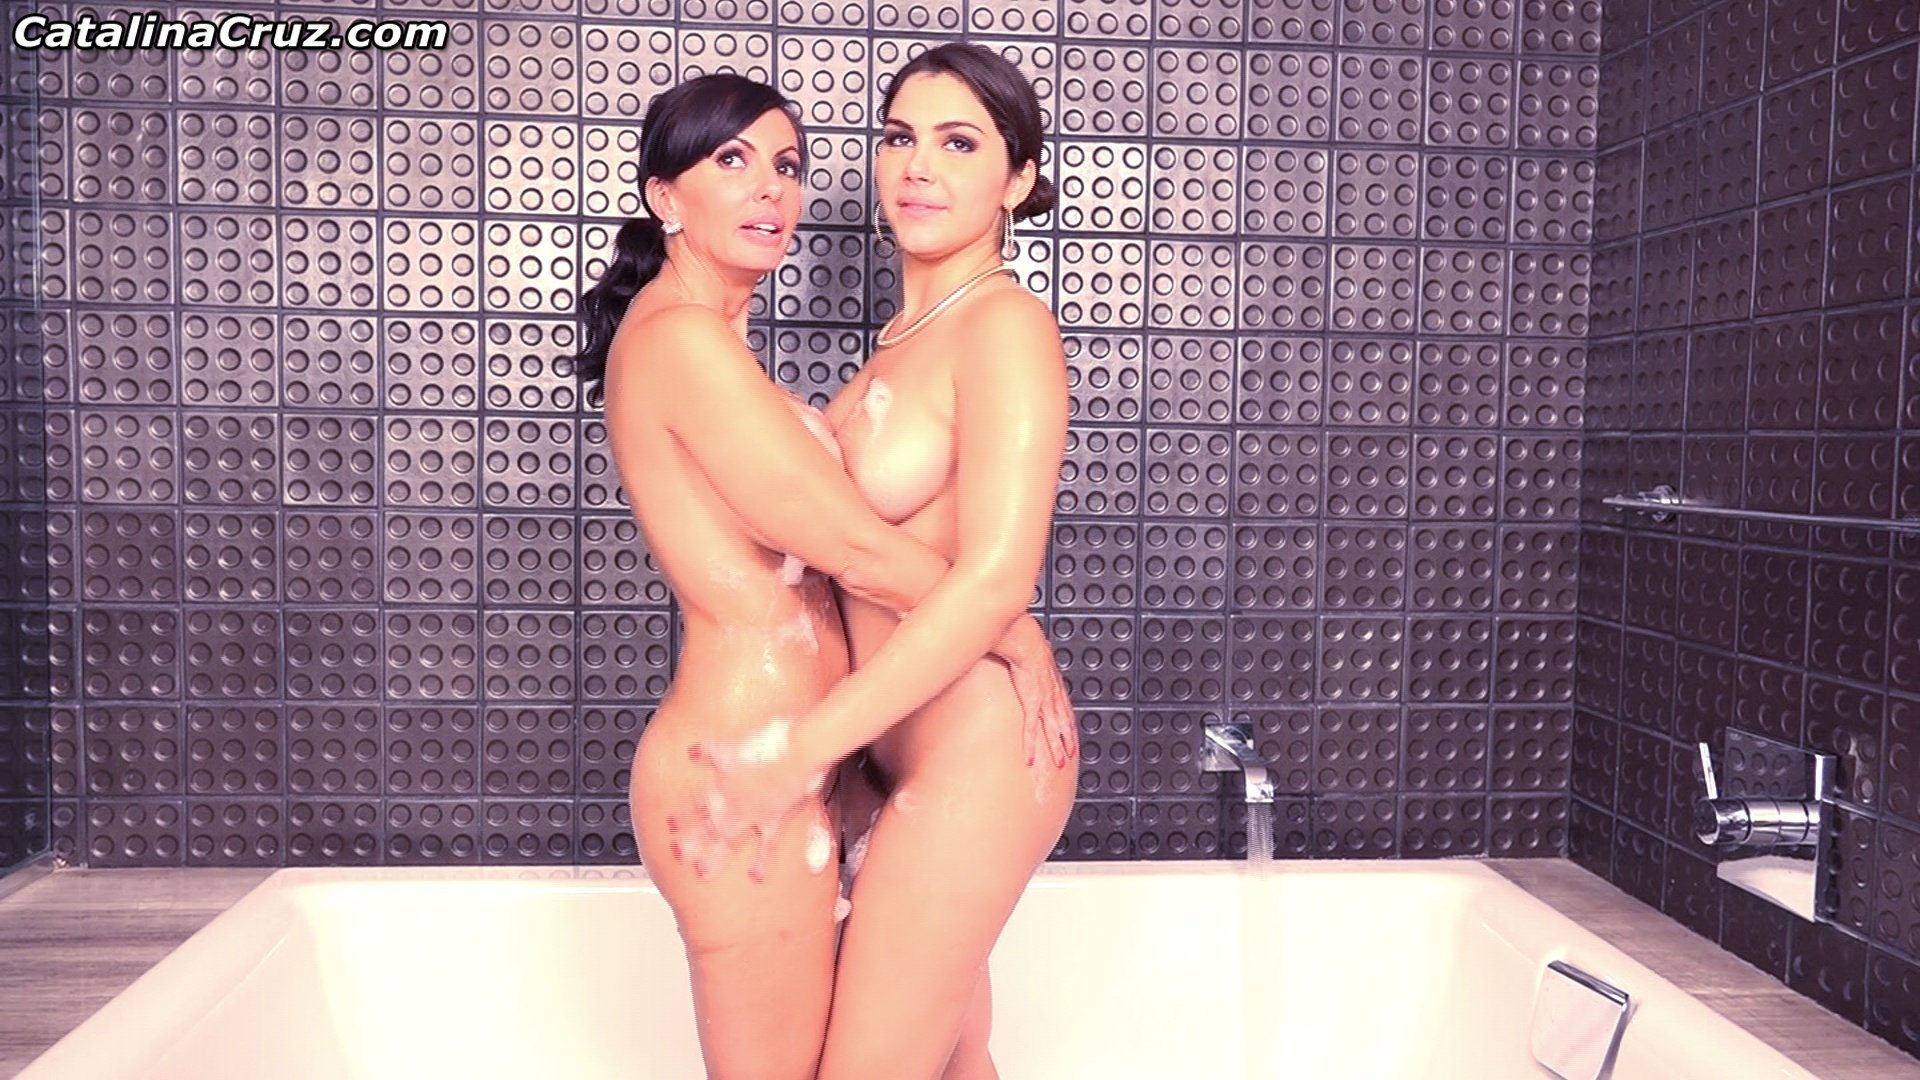 Bella catalina double anal